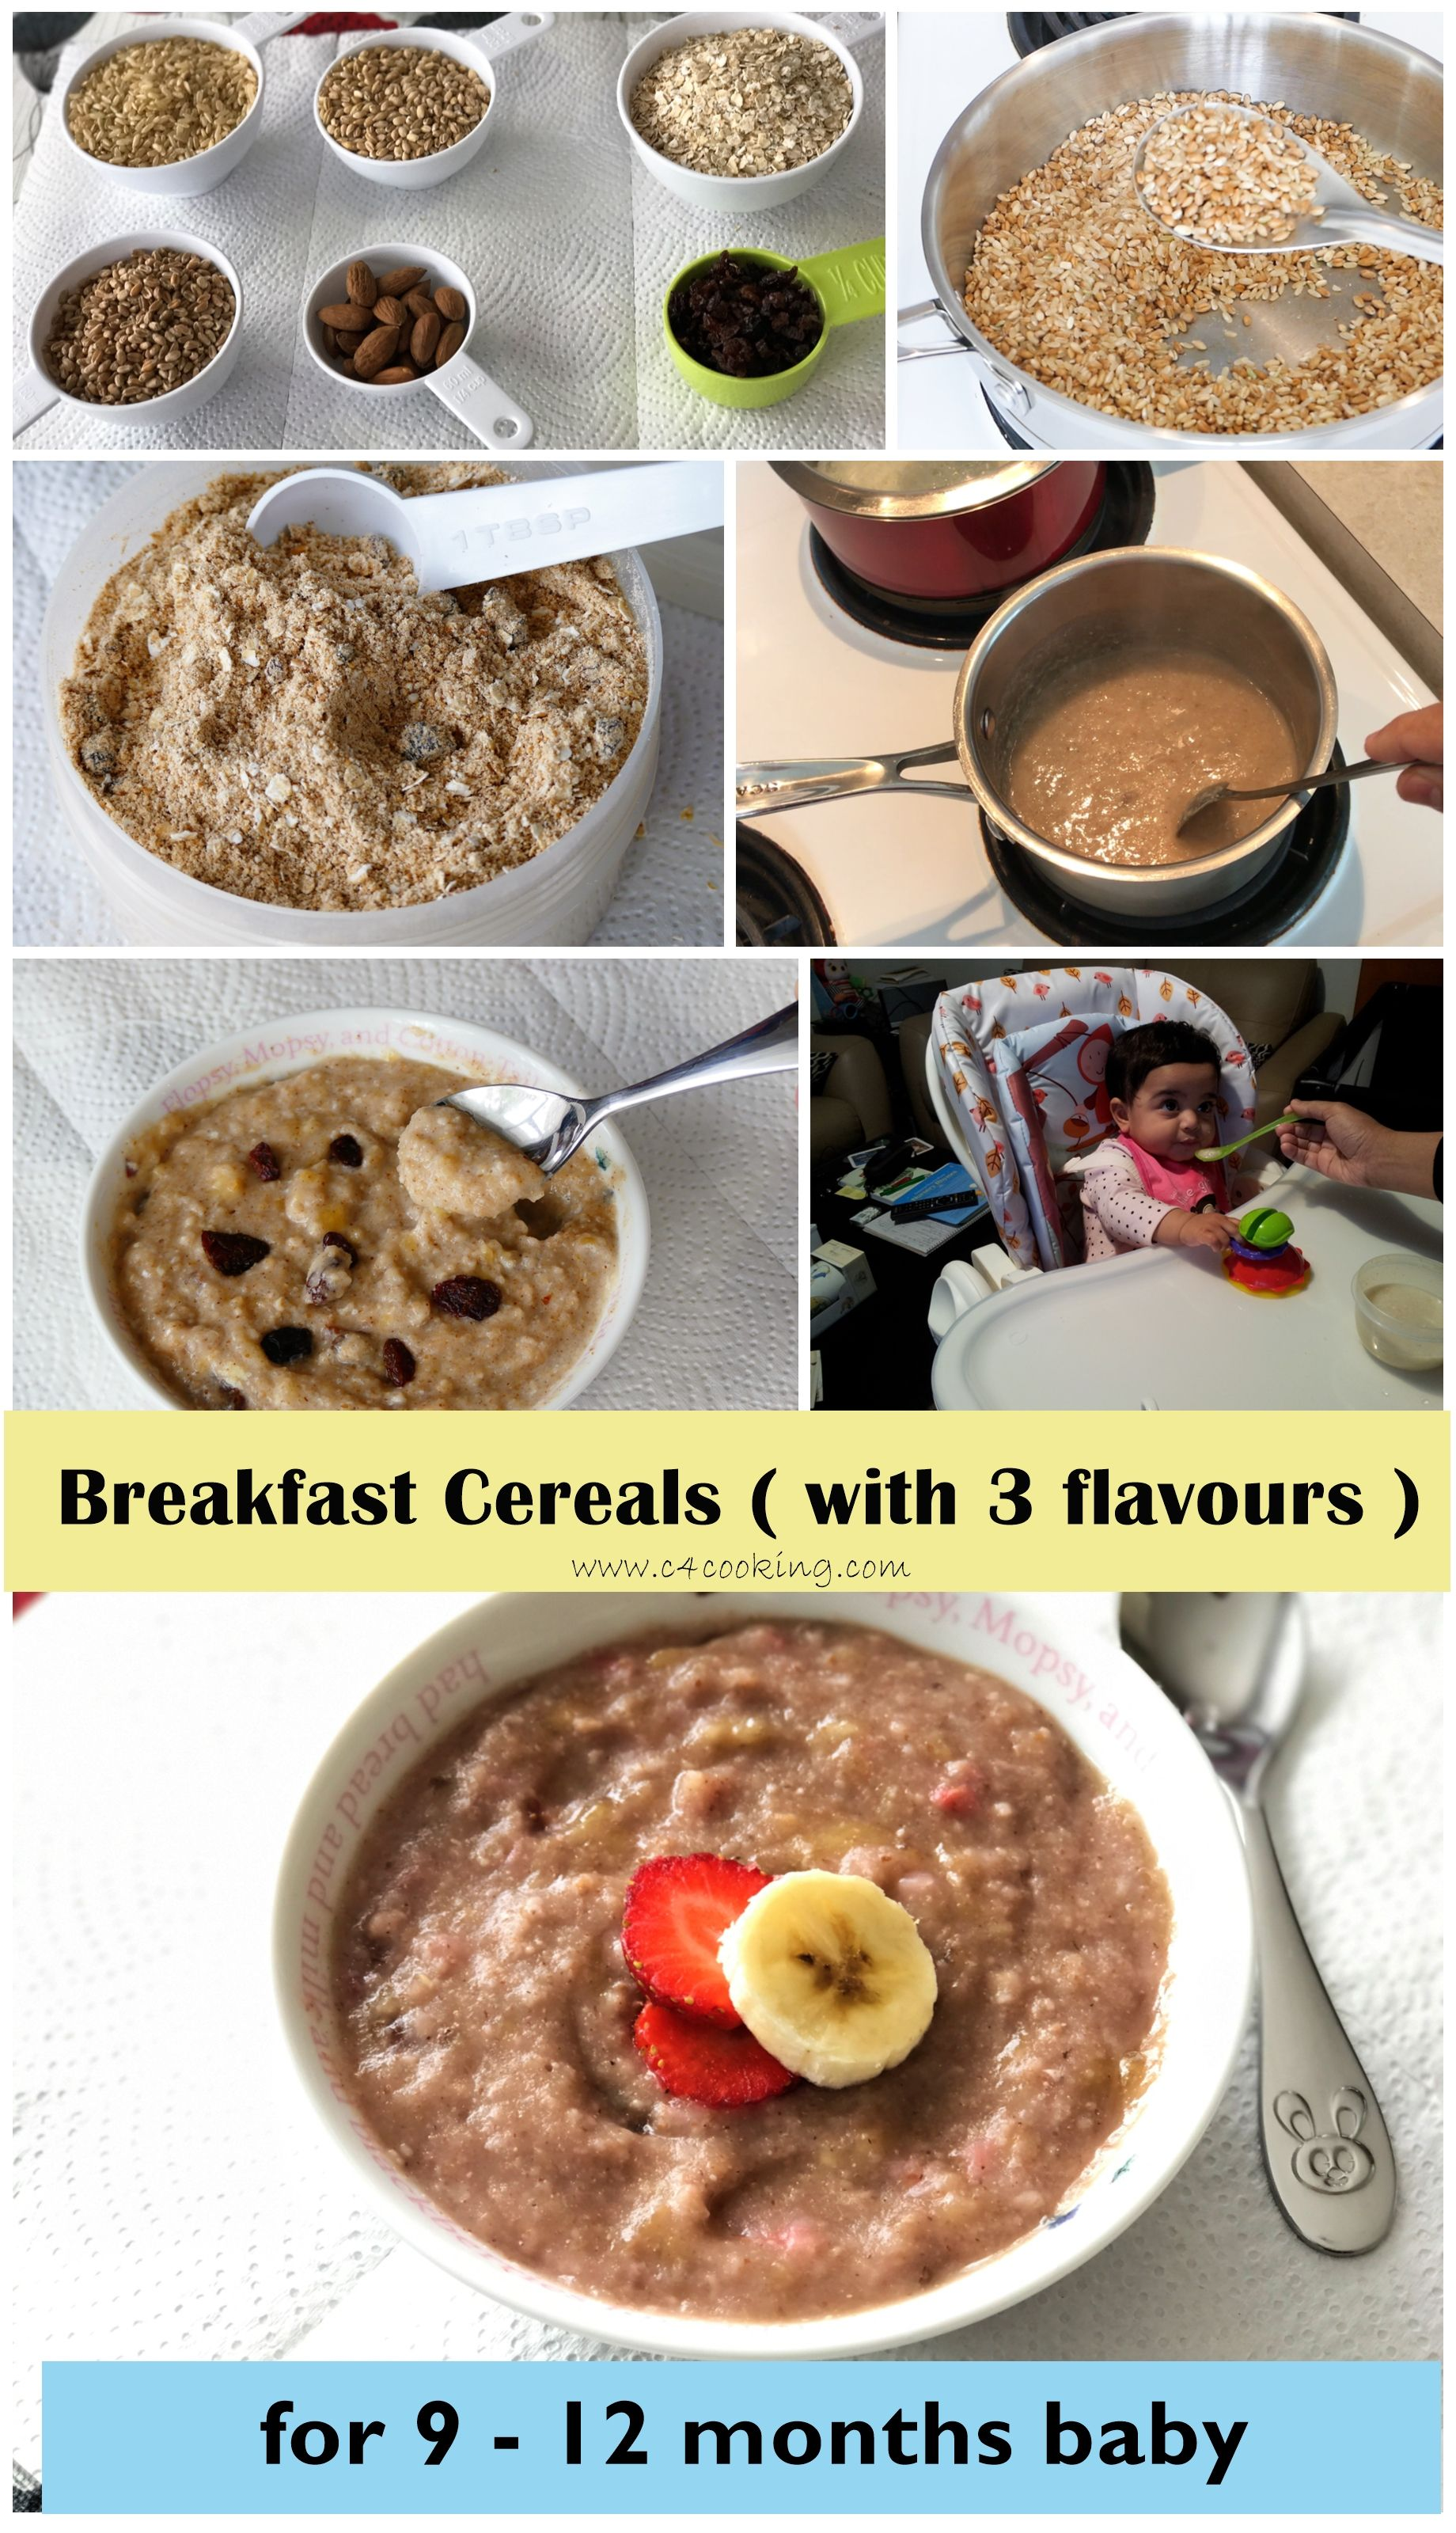 Breakfast cereal for 9 12 months baby food 4 my baby pinterest breakfast cereal for 9 12 months baby forumfinder Choice Image